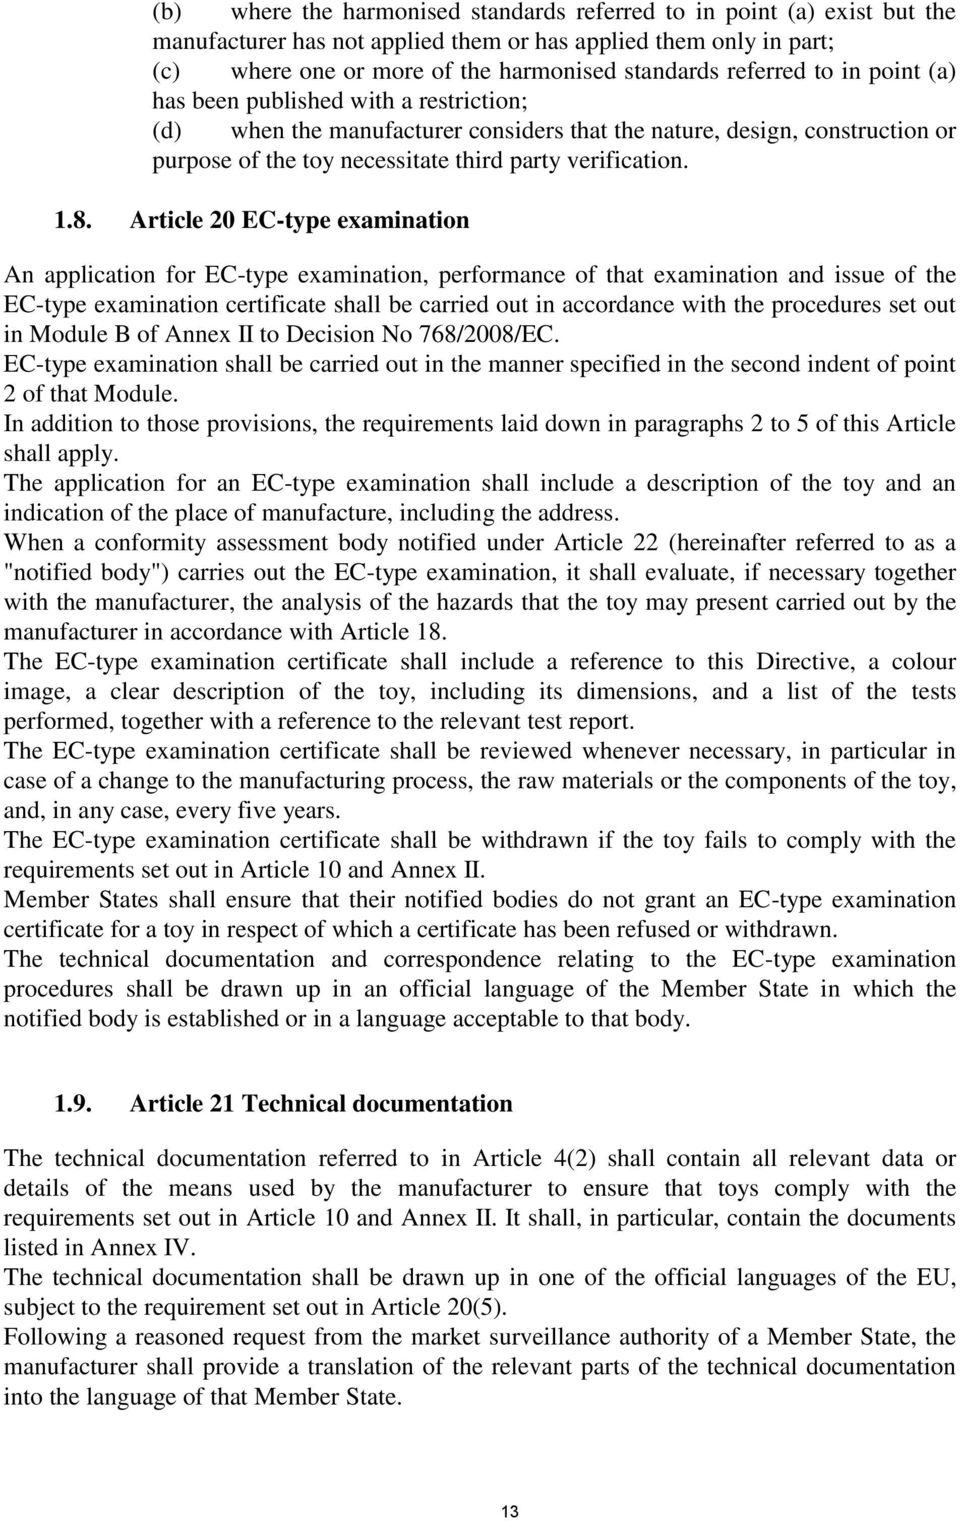 8. Article 20 EC-type examination An application for EC-type examination, performance of that examination and issue of the EC-type examination certificate shall be carried out in accordance with the